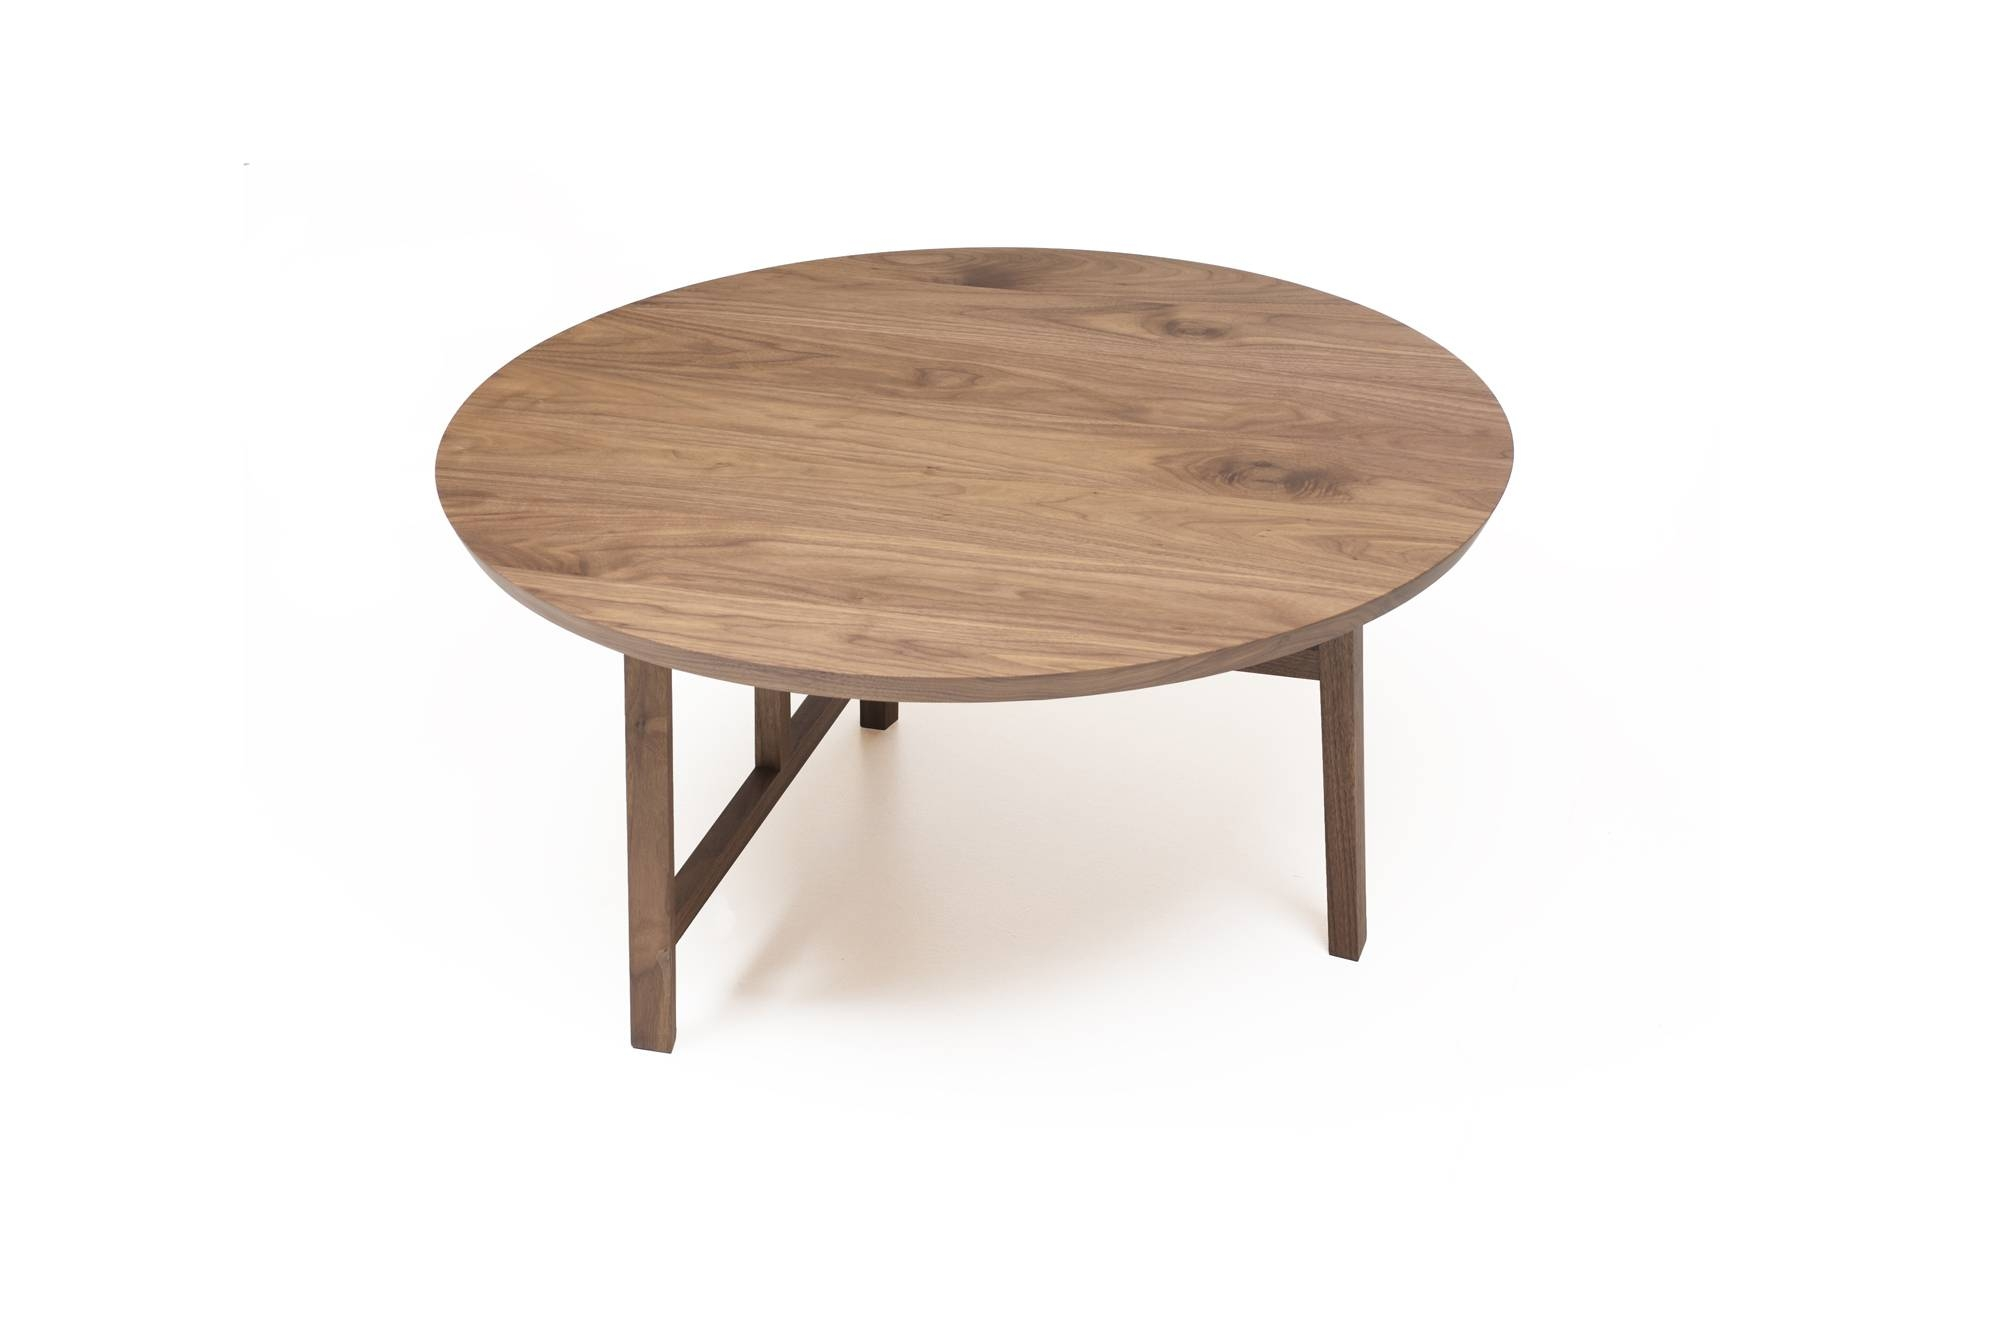 Photo Of Hardwood Coffee Table With Coffee Table Elegant Wood In Small Wood Coffee Tables (View 10 of 30)